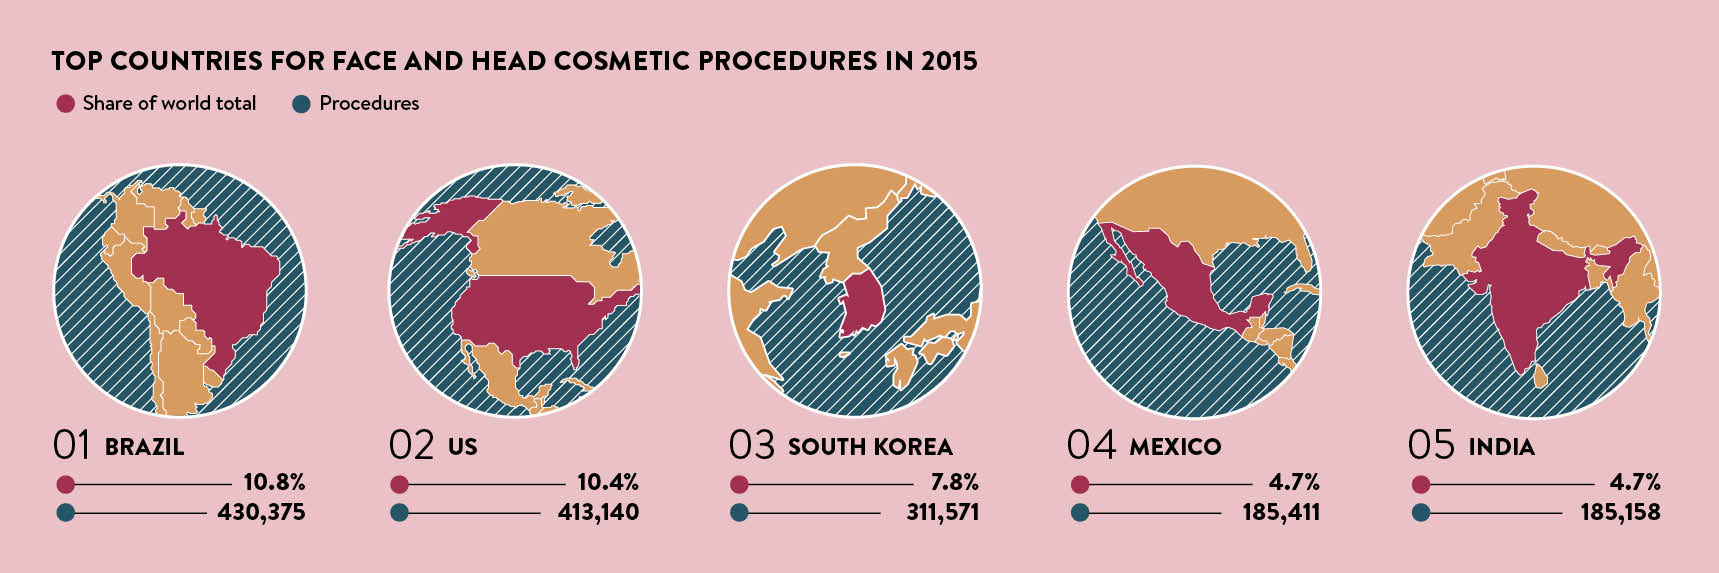 Top countries for face and head cosmetics in 2015